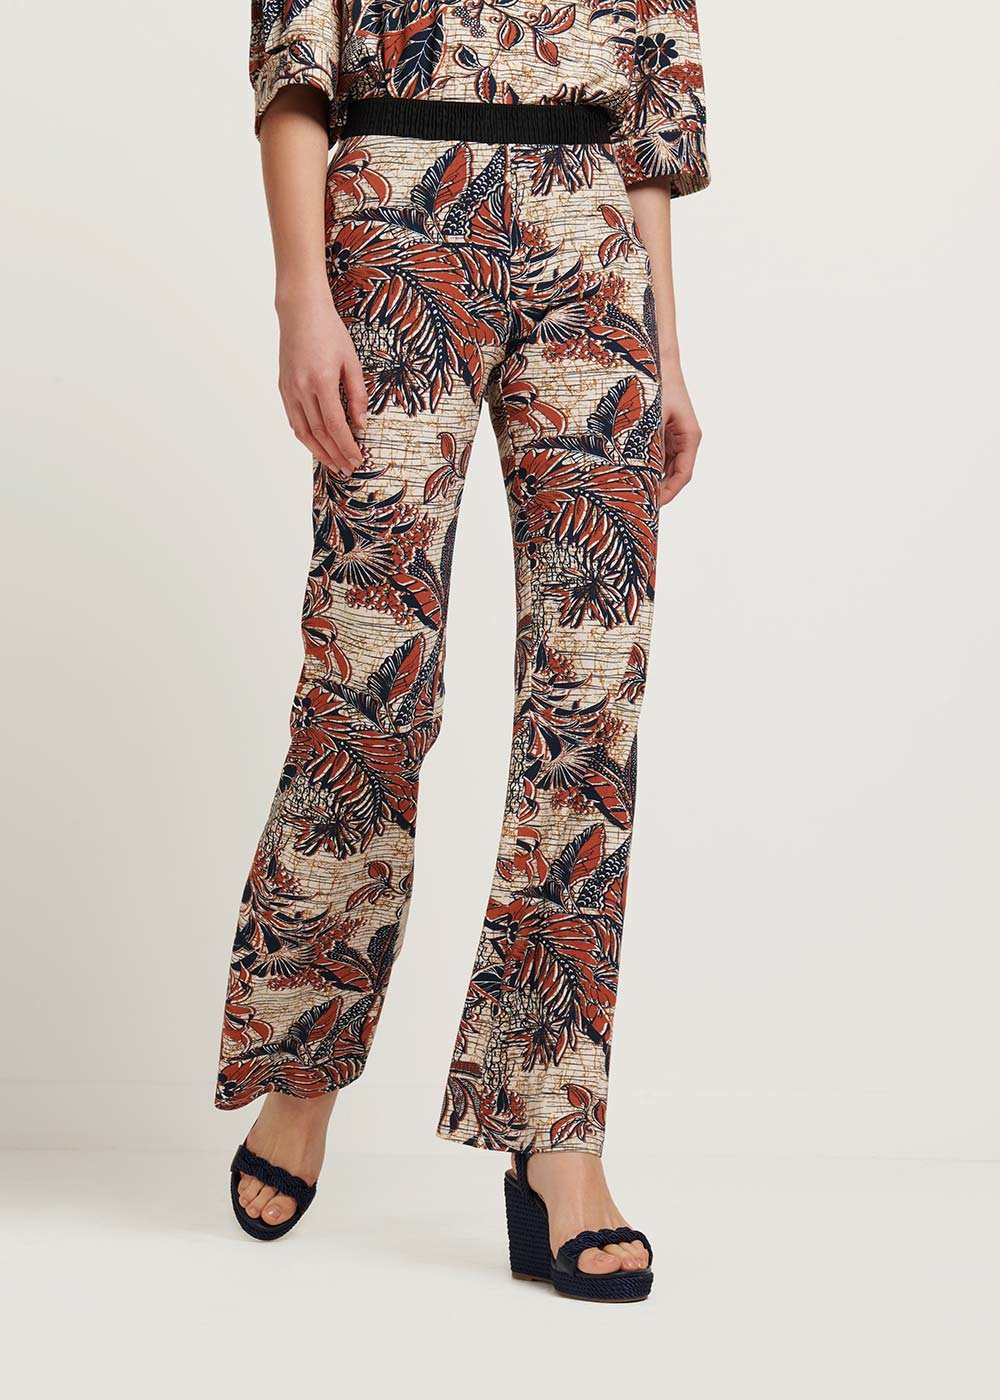 Pedros trousers with Ethiopian print - L.beige \ cannella Fantasia - Woman